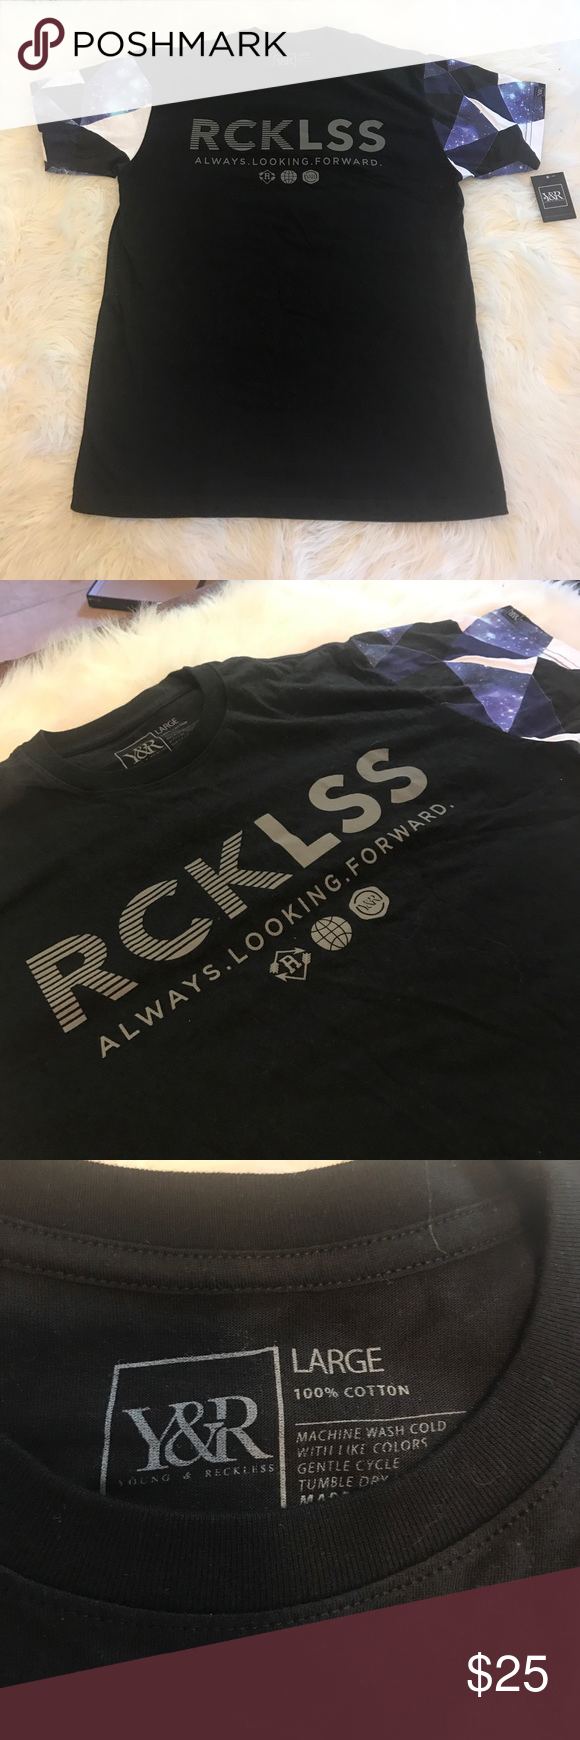 Young & reckless graph tee NWT | Reckless shirts, Tees